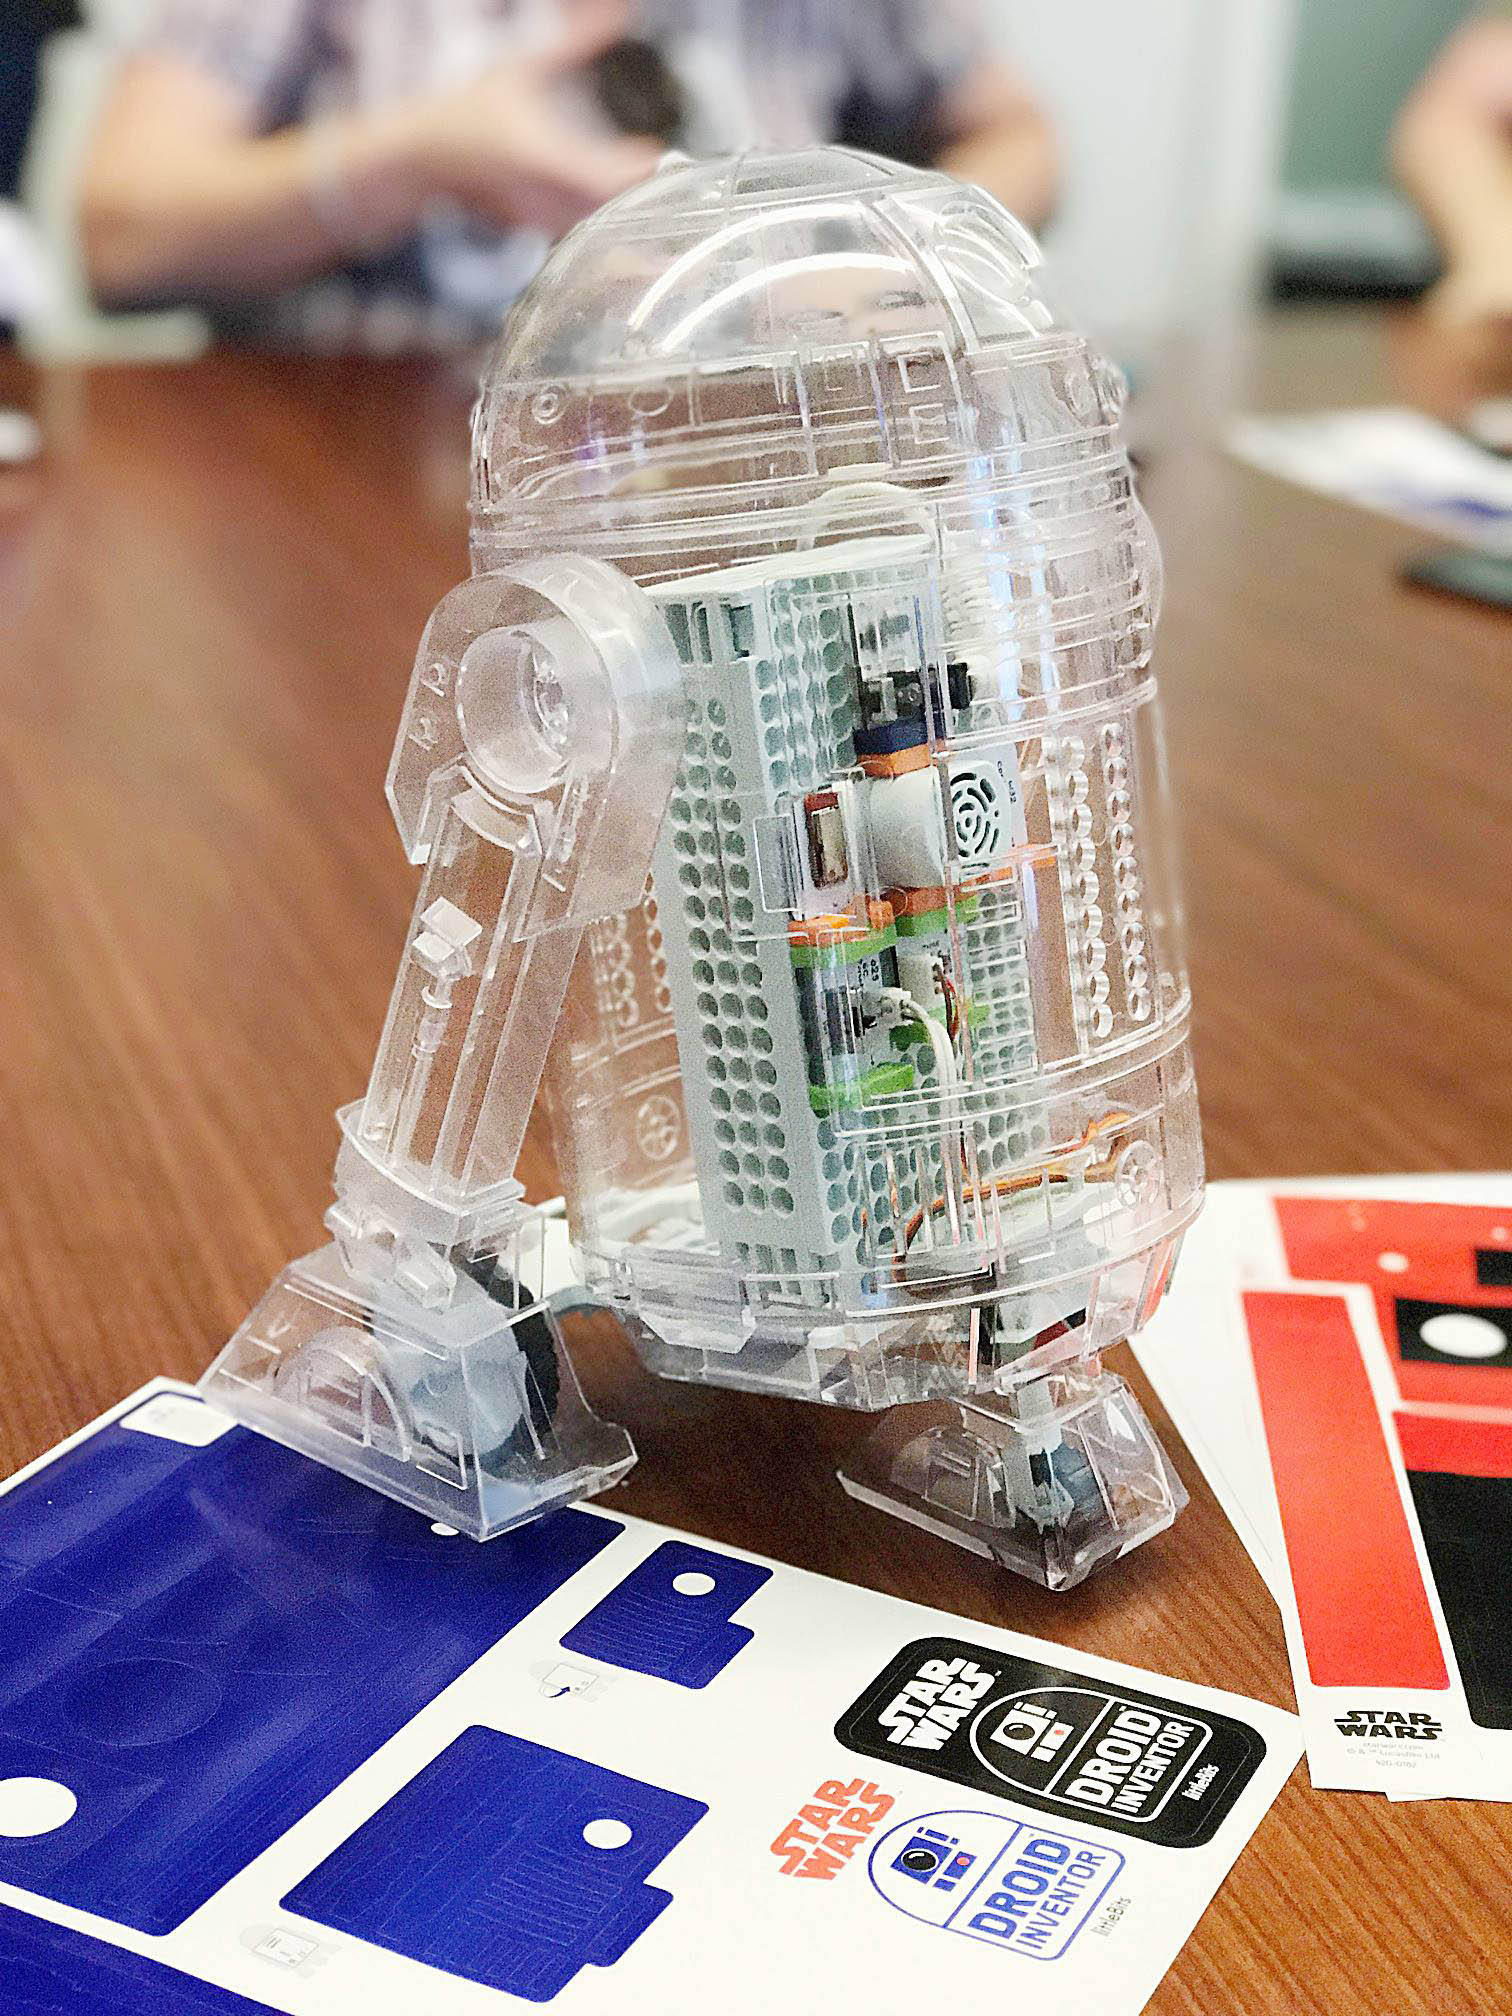 Gift idea: littleBits Droid Inventor Kit